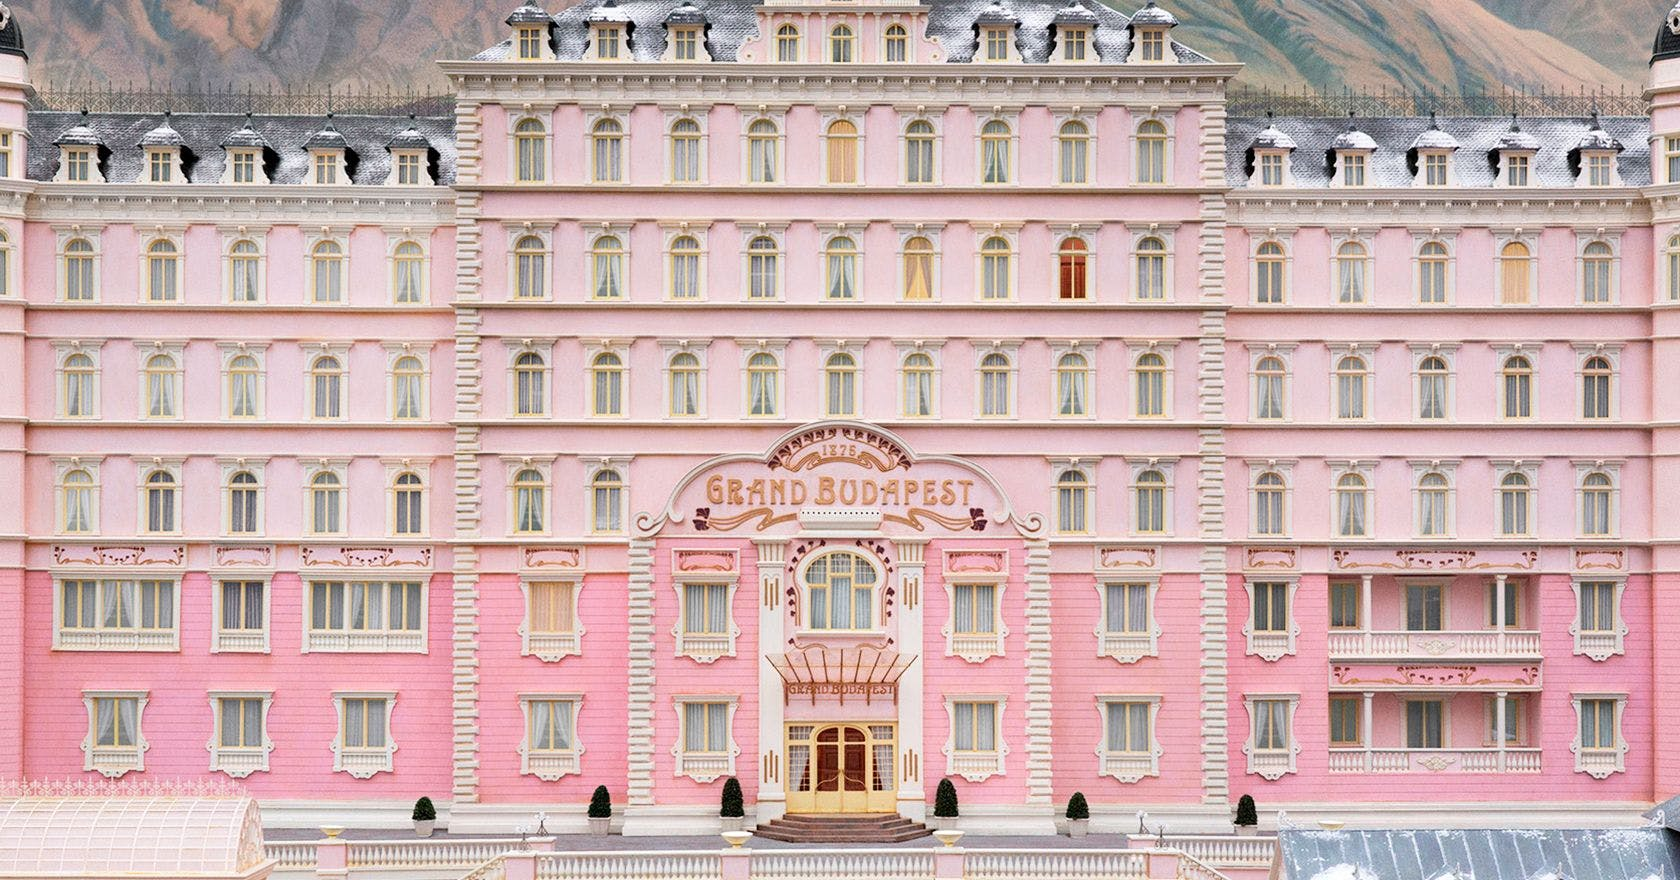 8 pastel homewares for ultimate Wes Anderson decor inspiration